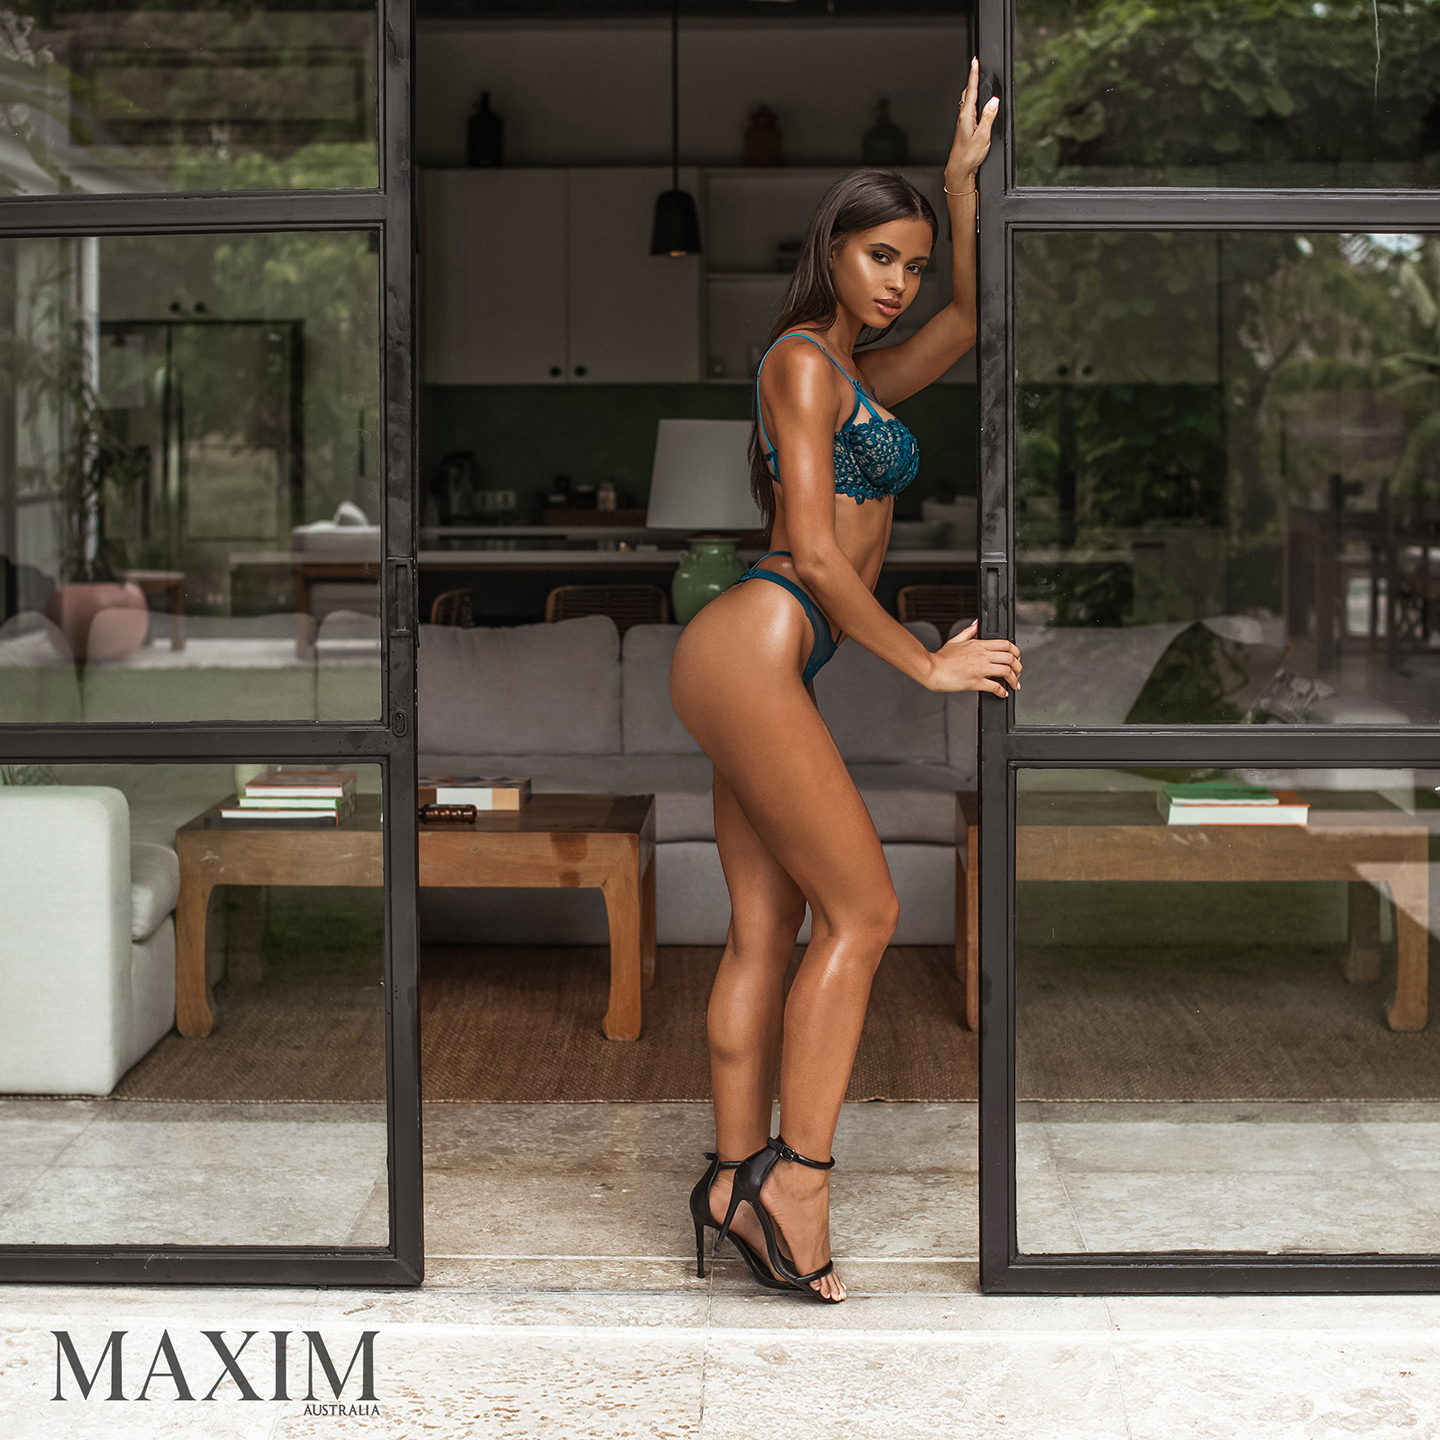 MAXIM-Australia-Ashley-Arre-11